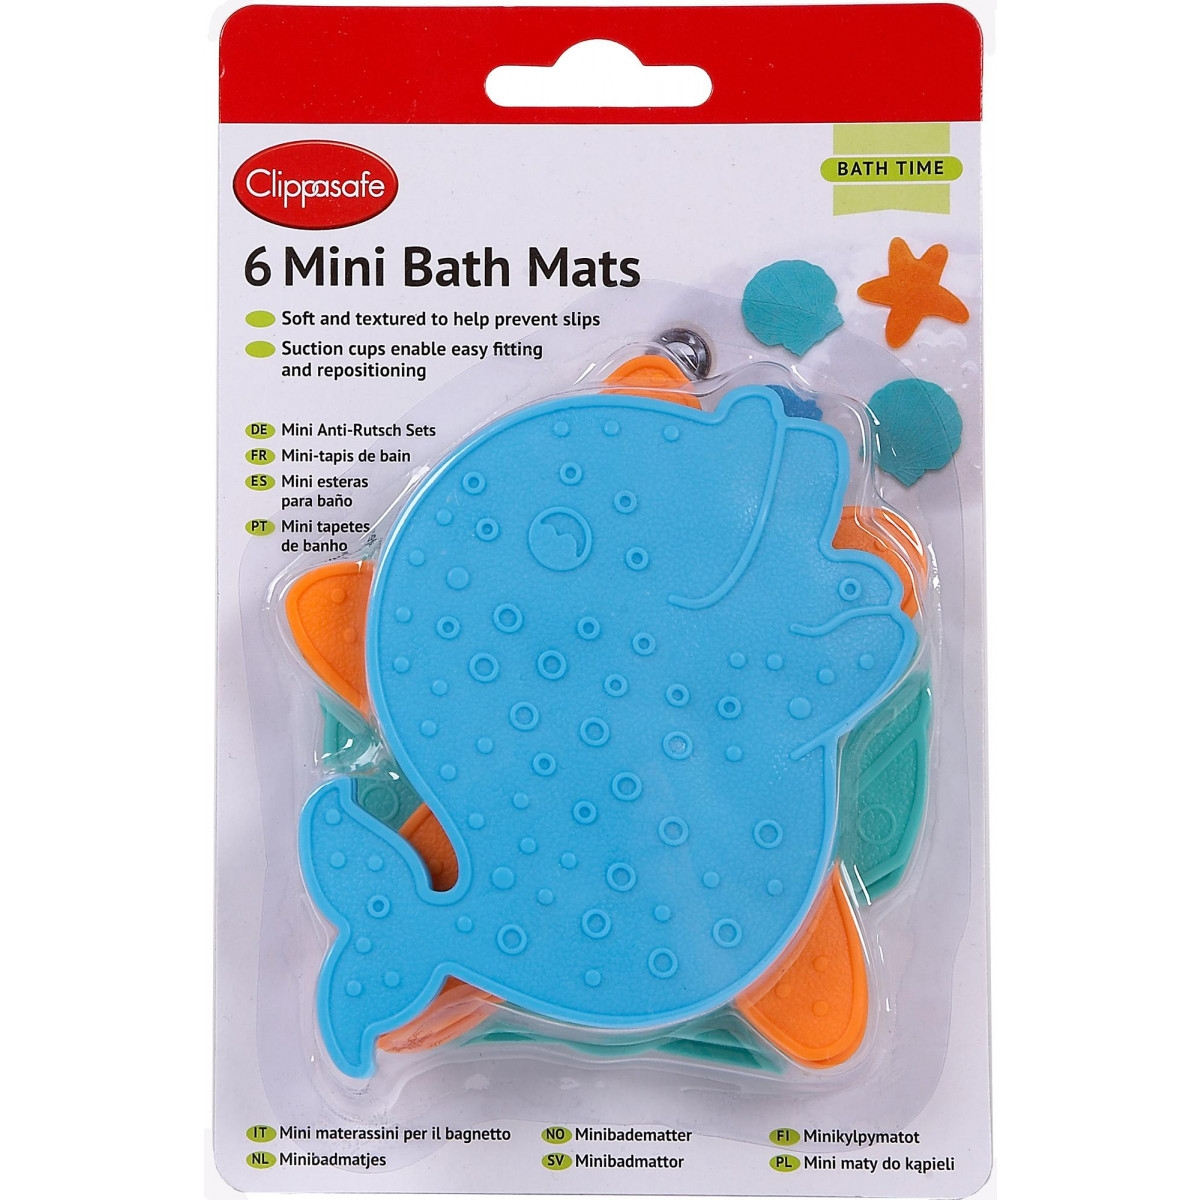 Permalink to Mini Bath Mats